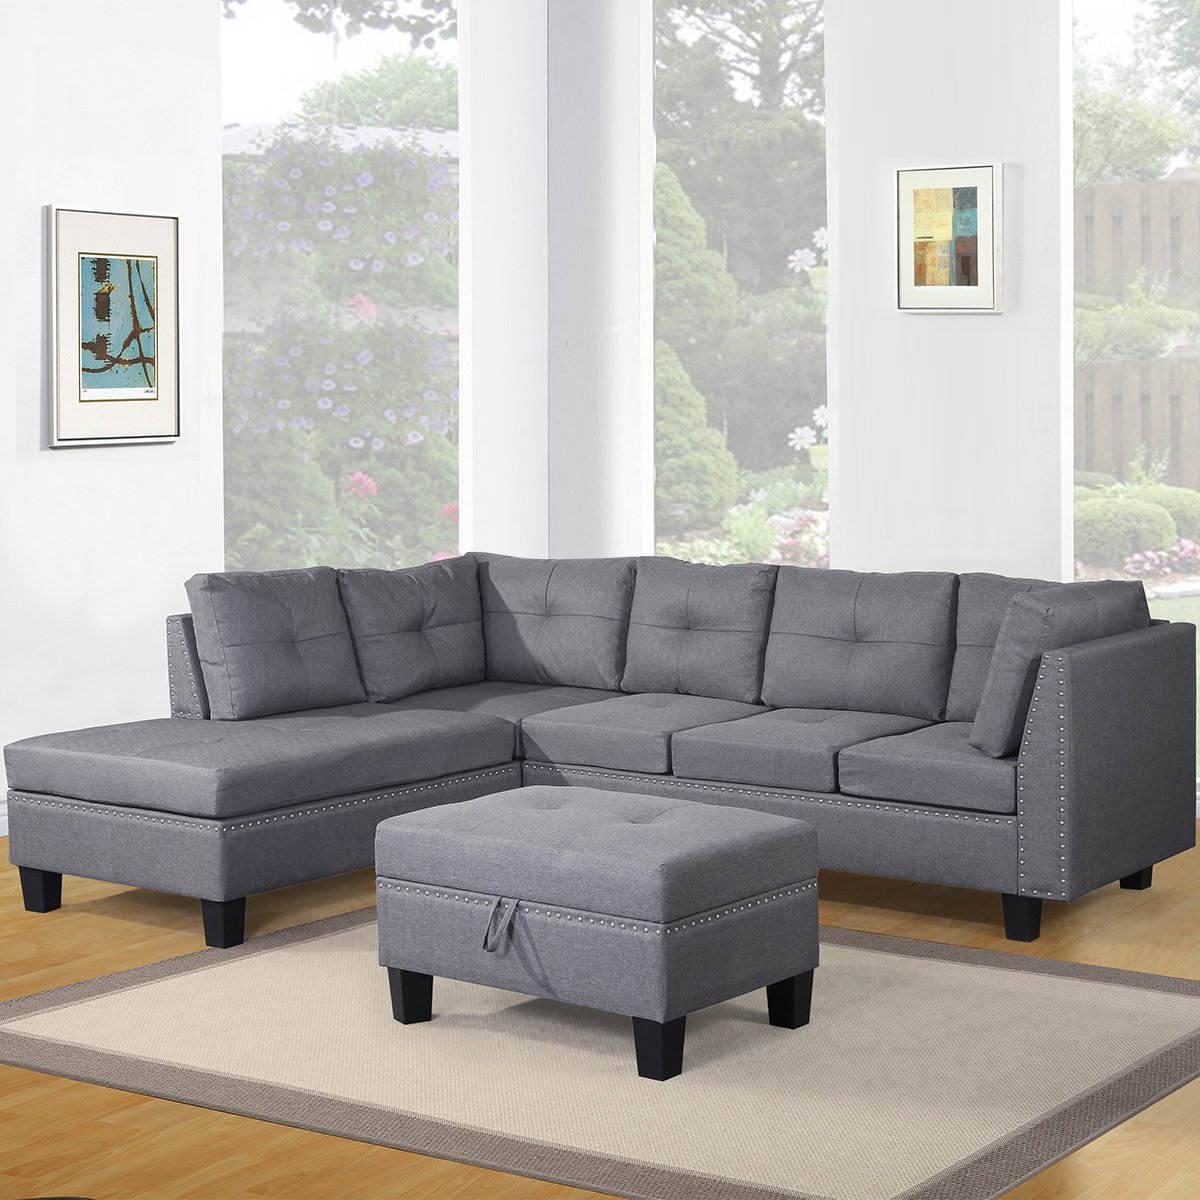 Amazon.com: Harper & Bright Designs Contemporary 3 Piece Sectional Sofa Set  with Ottoman and Chaise Lounge Grey Linen Fabric (Grey): Pet Supplies